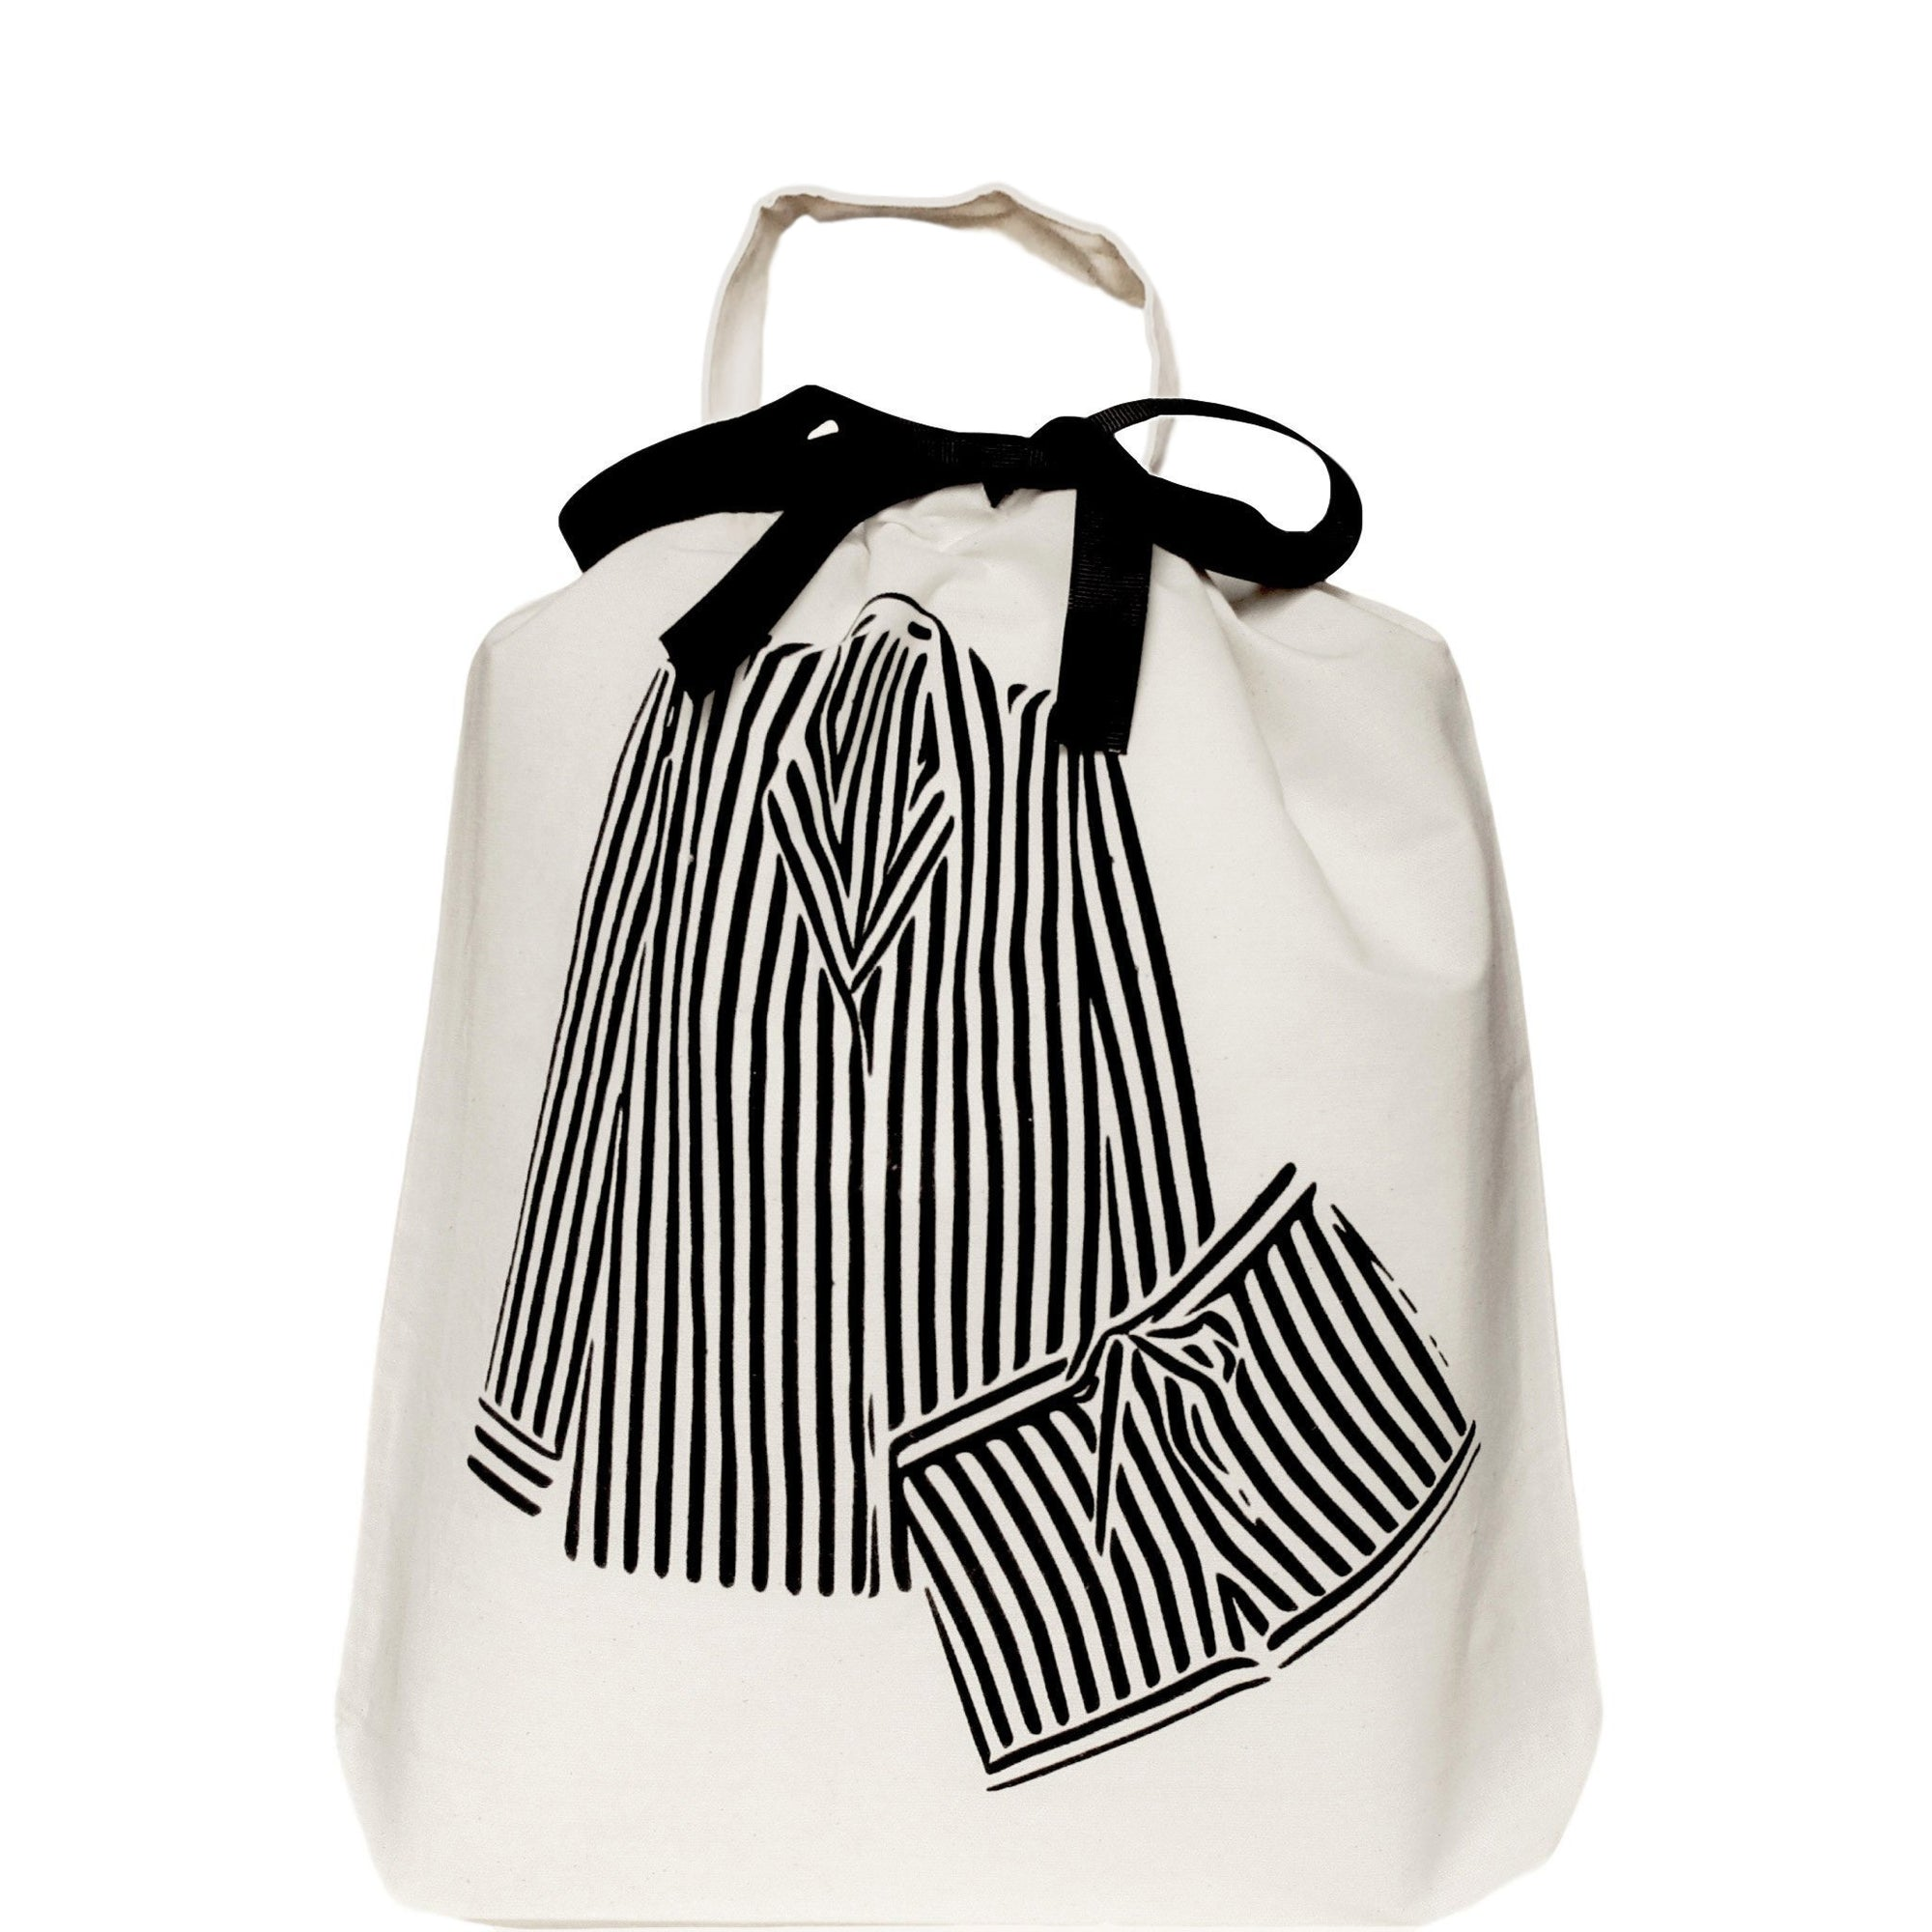 Striped Pajamas Bag - Bag-all Europe